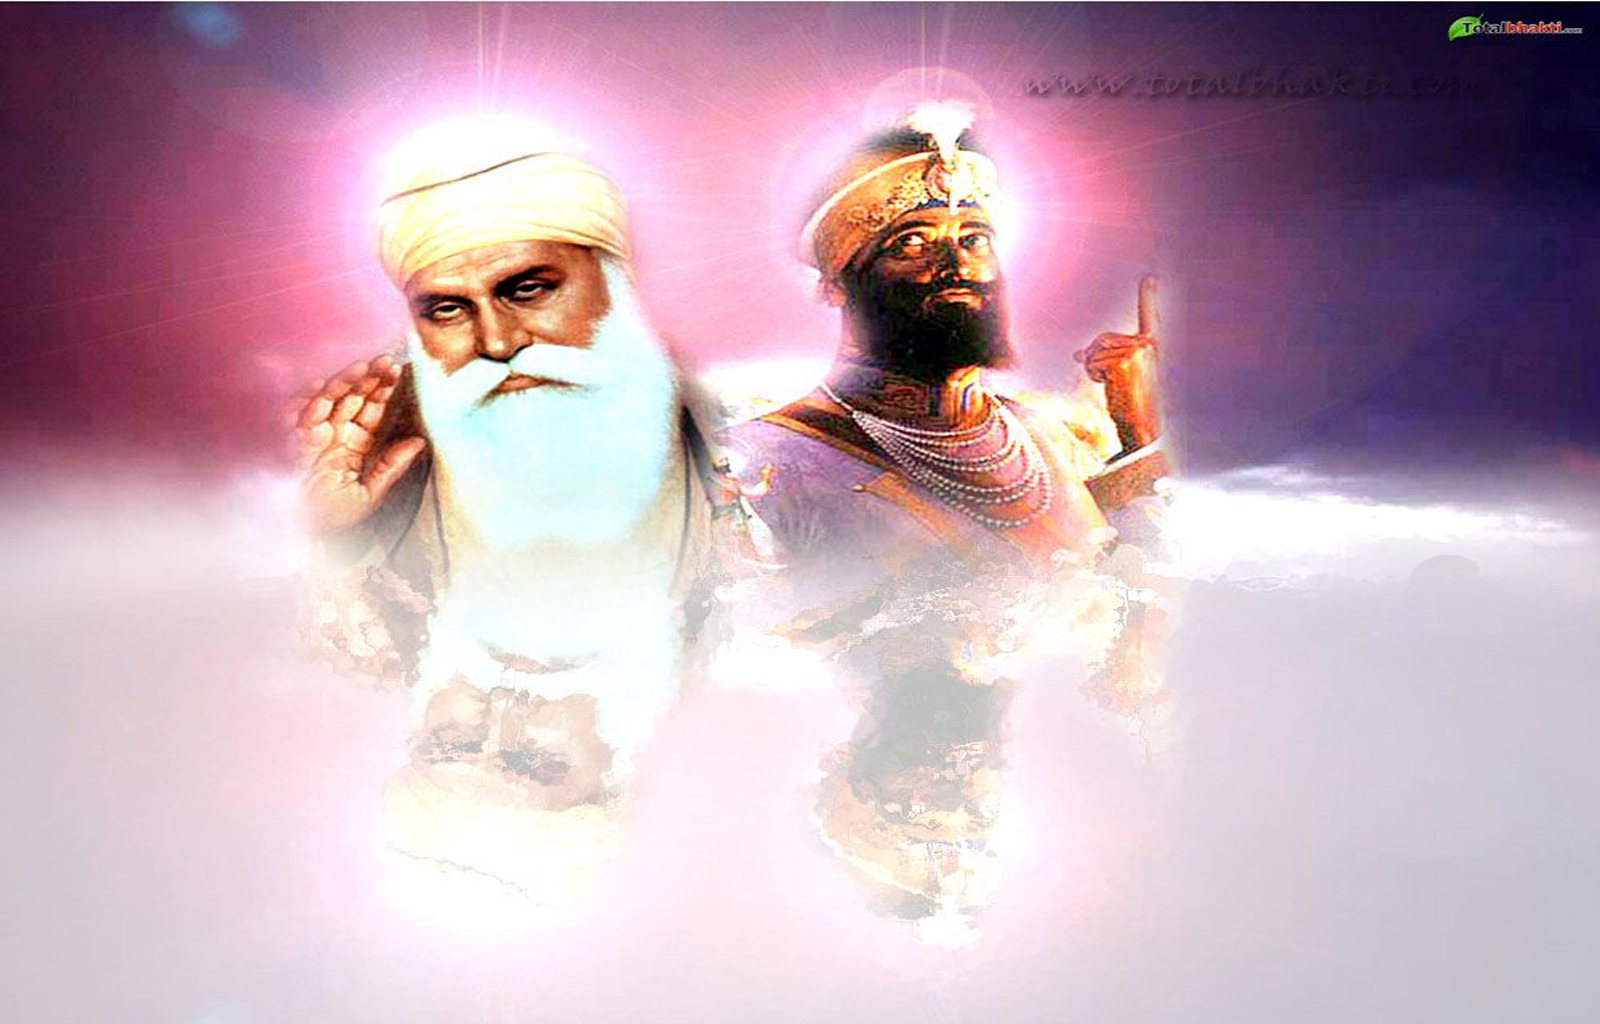 Sikh Guru Wallpaper - WallpaperSafari